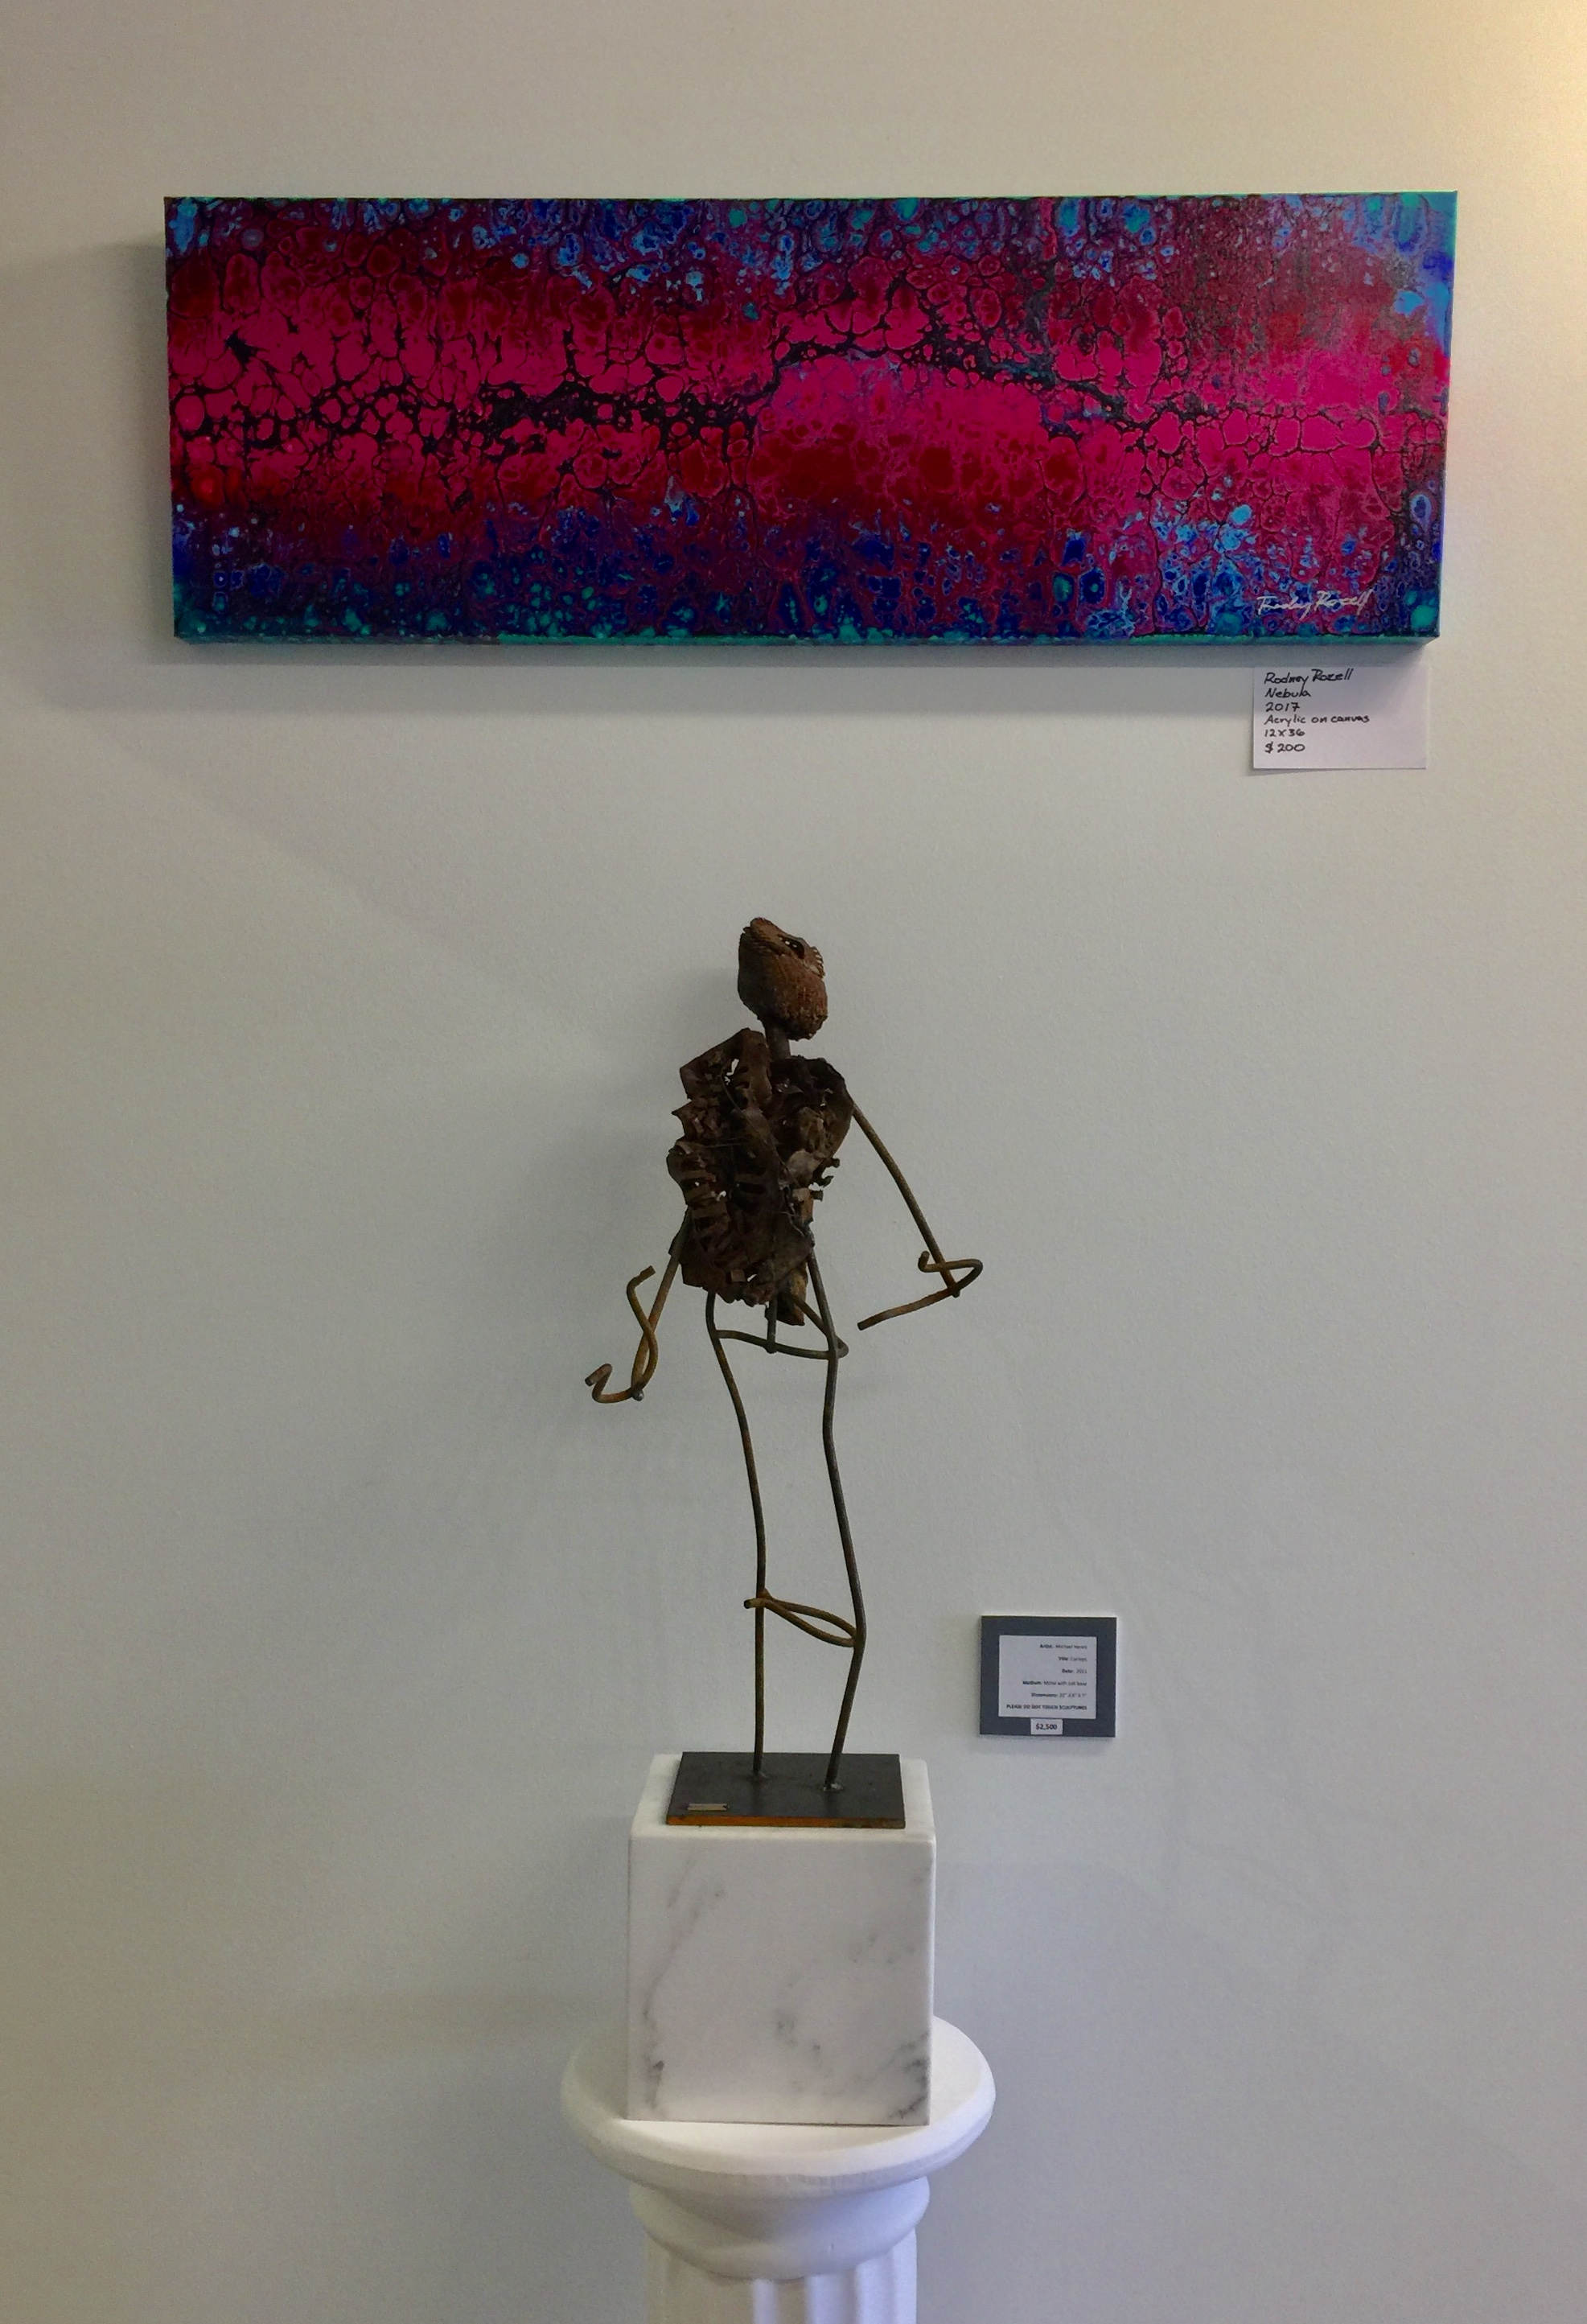 Painting by Rodney Rozell, sculpture by Michael Hanes